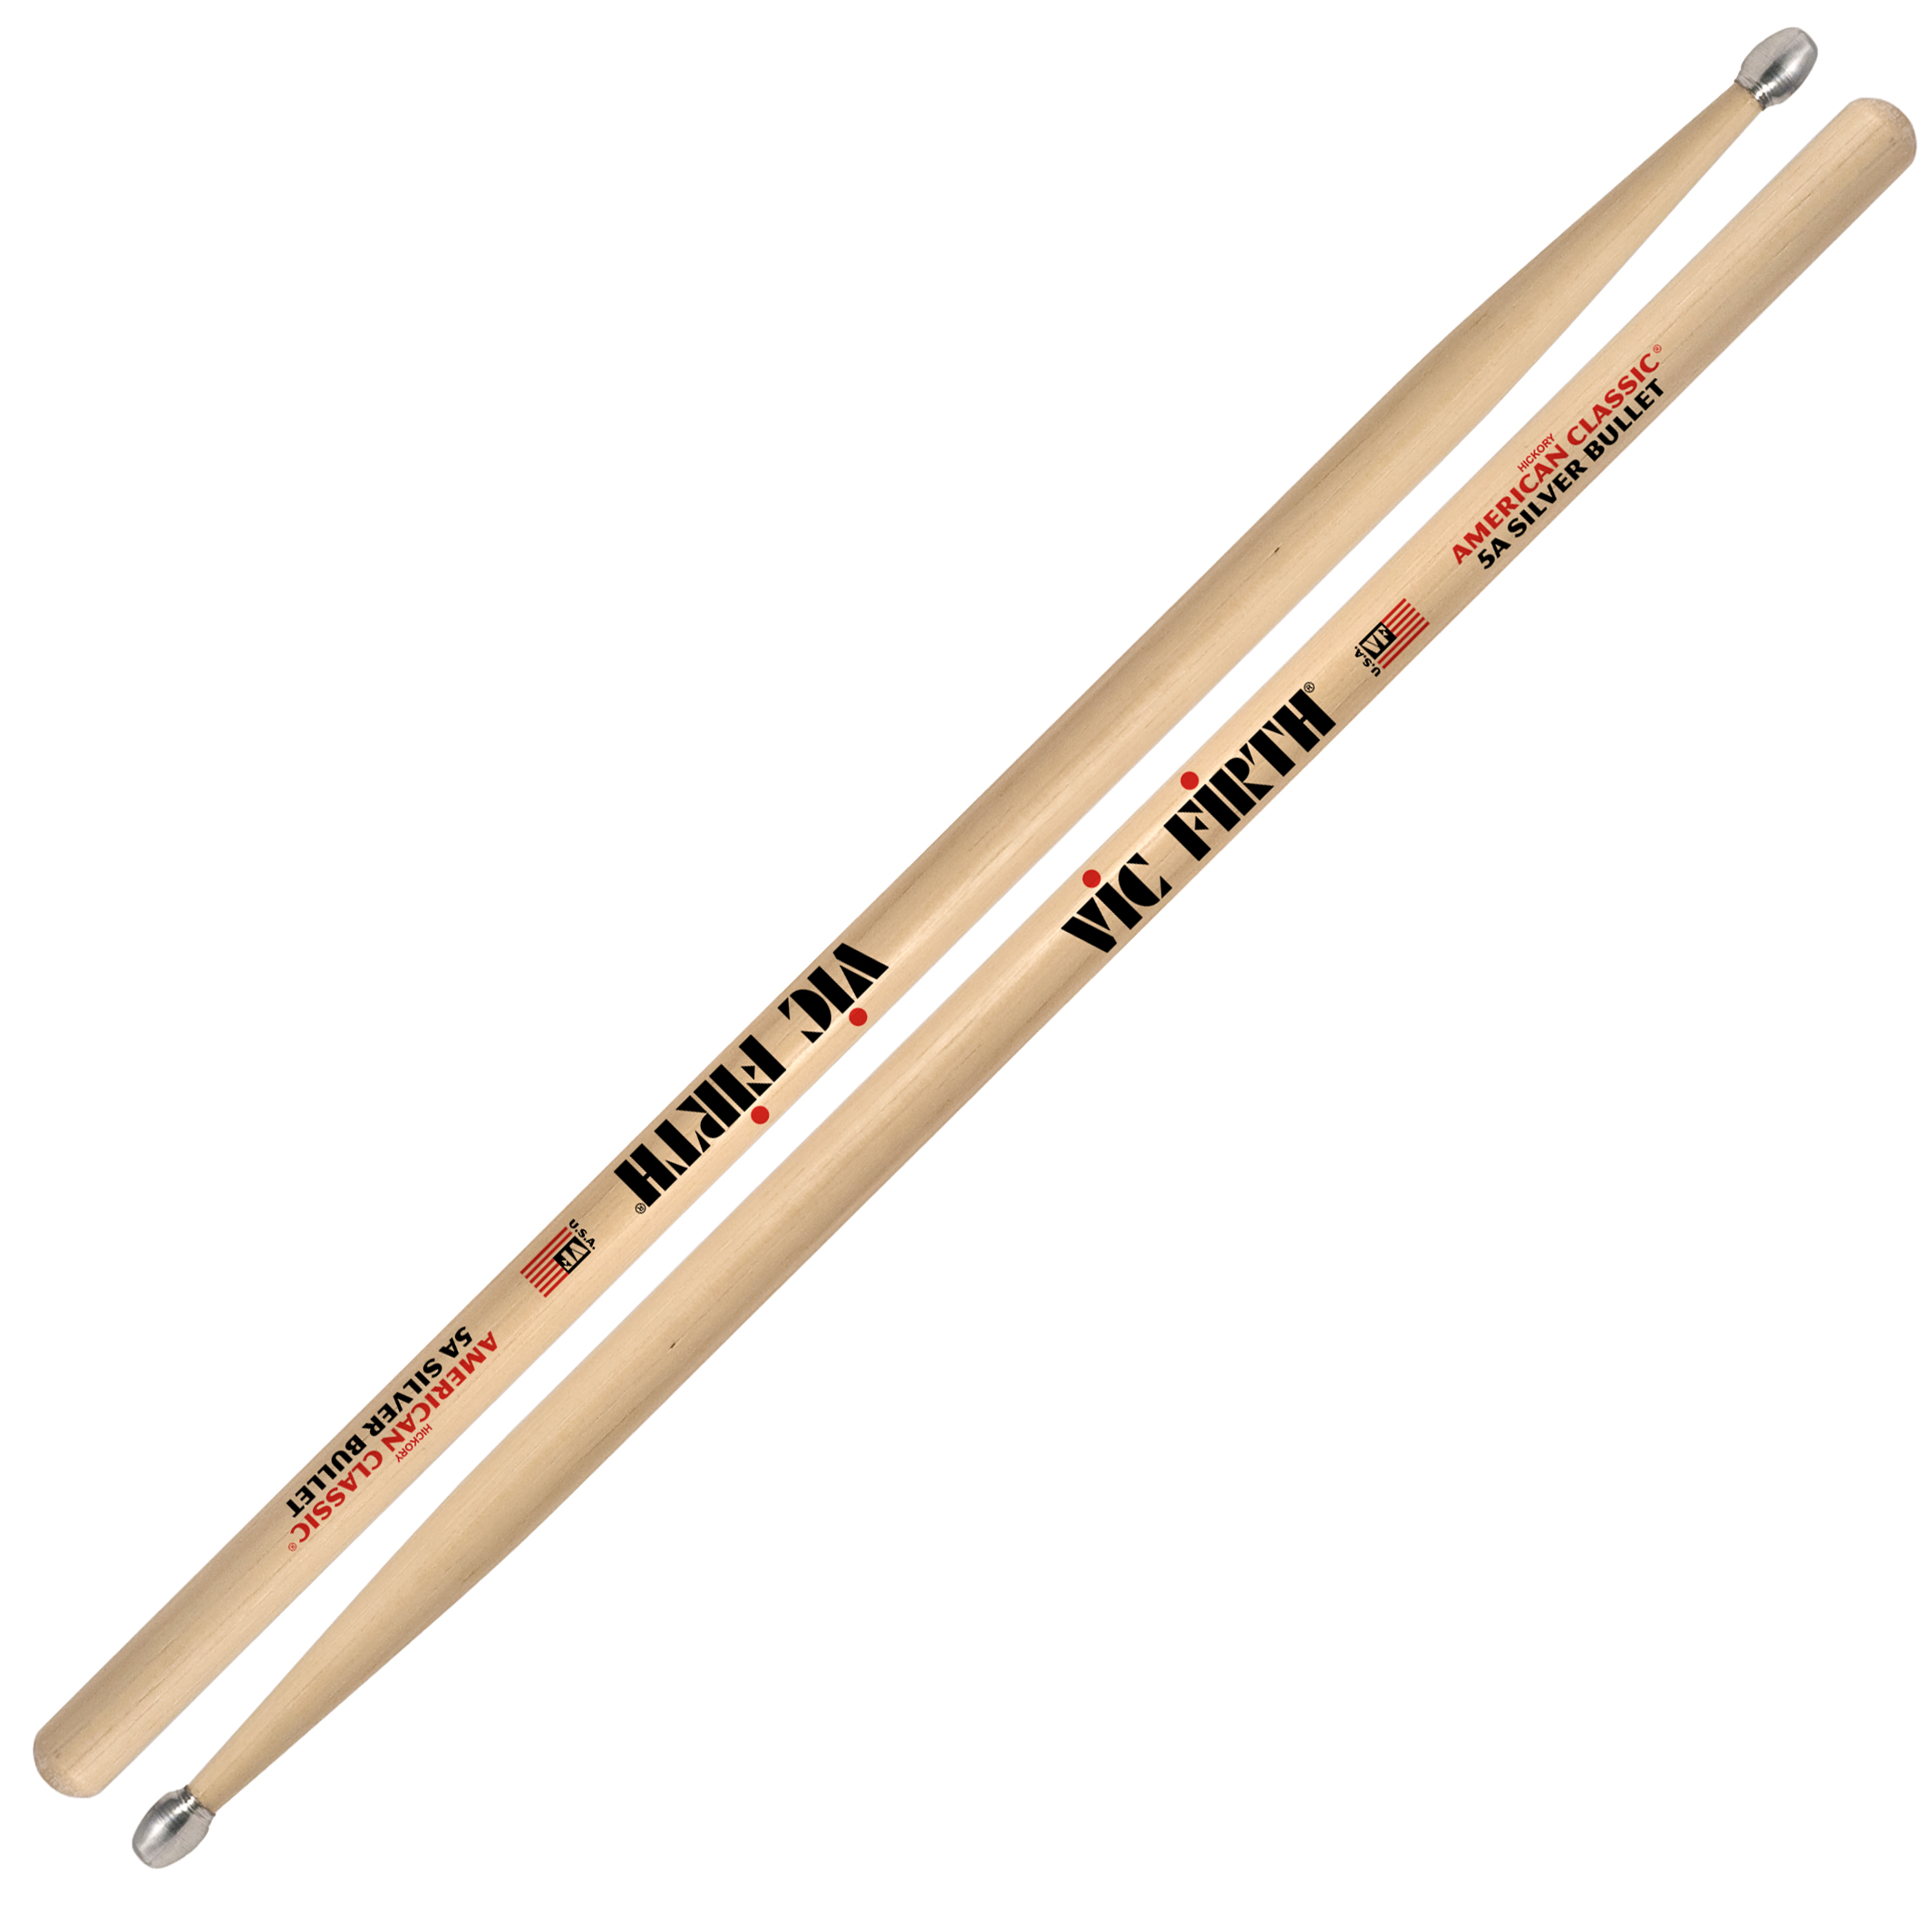 vic firth american classic silver bullet 5a drumsticks 5asb. Black Bedroom Furniture Sets. Home Design Ideas